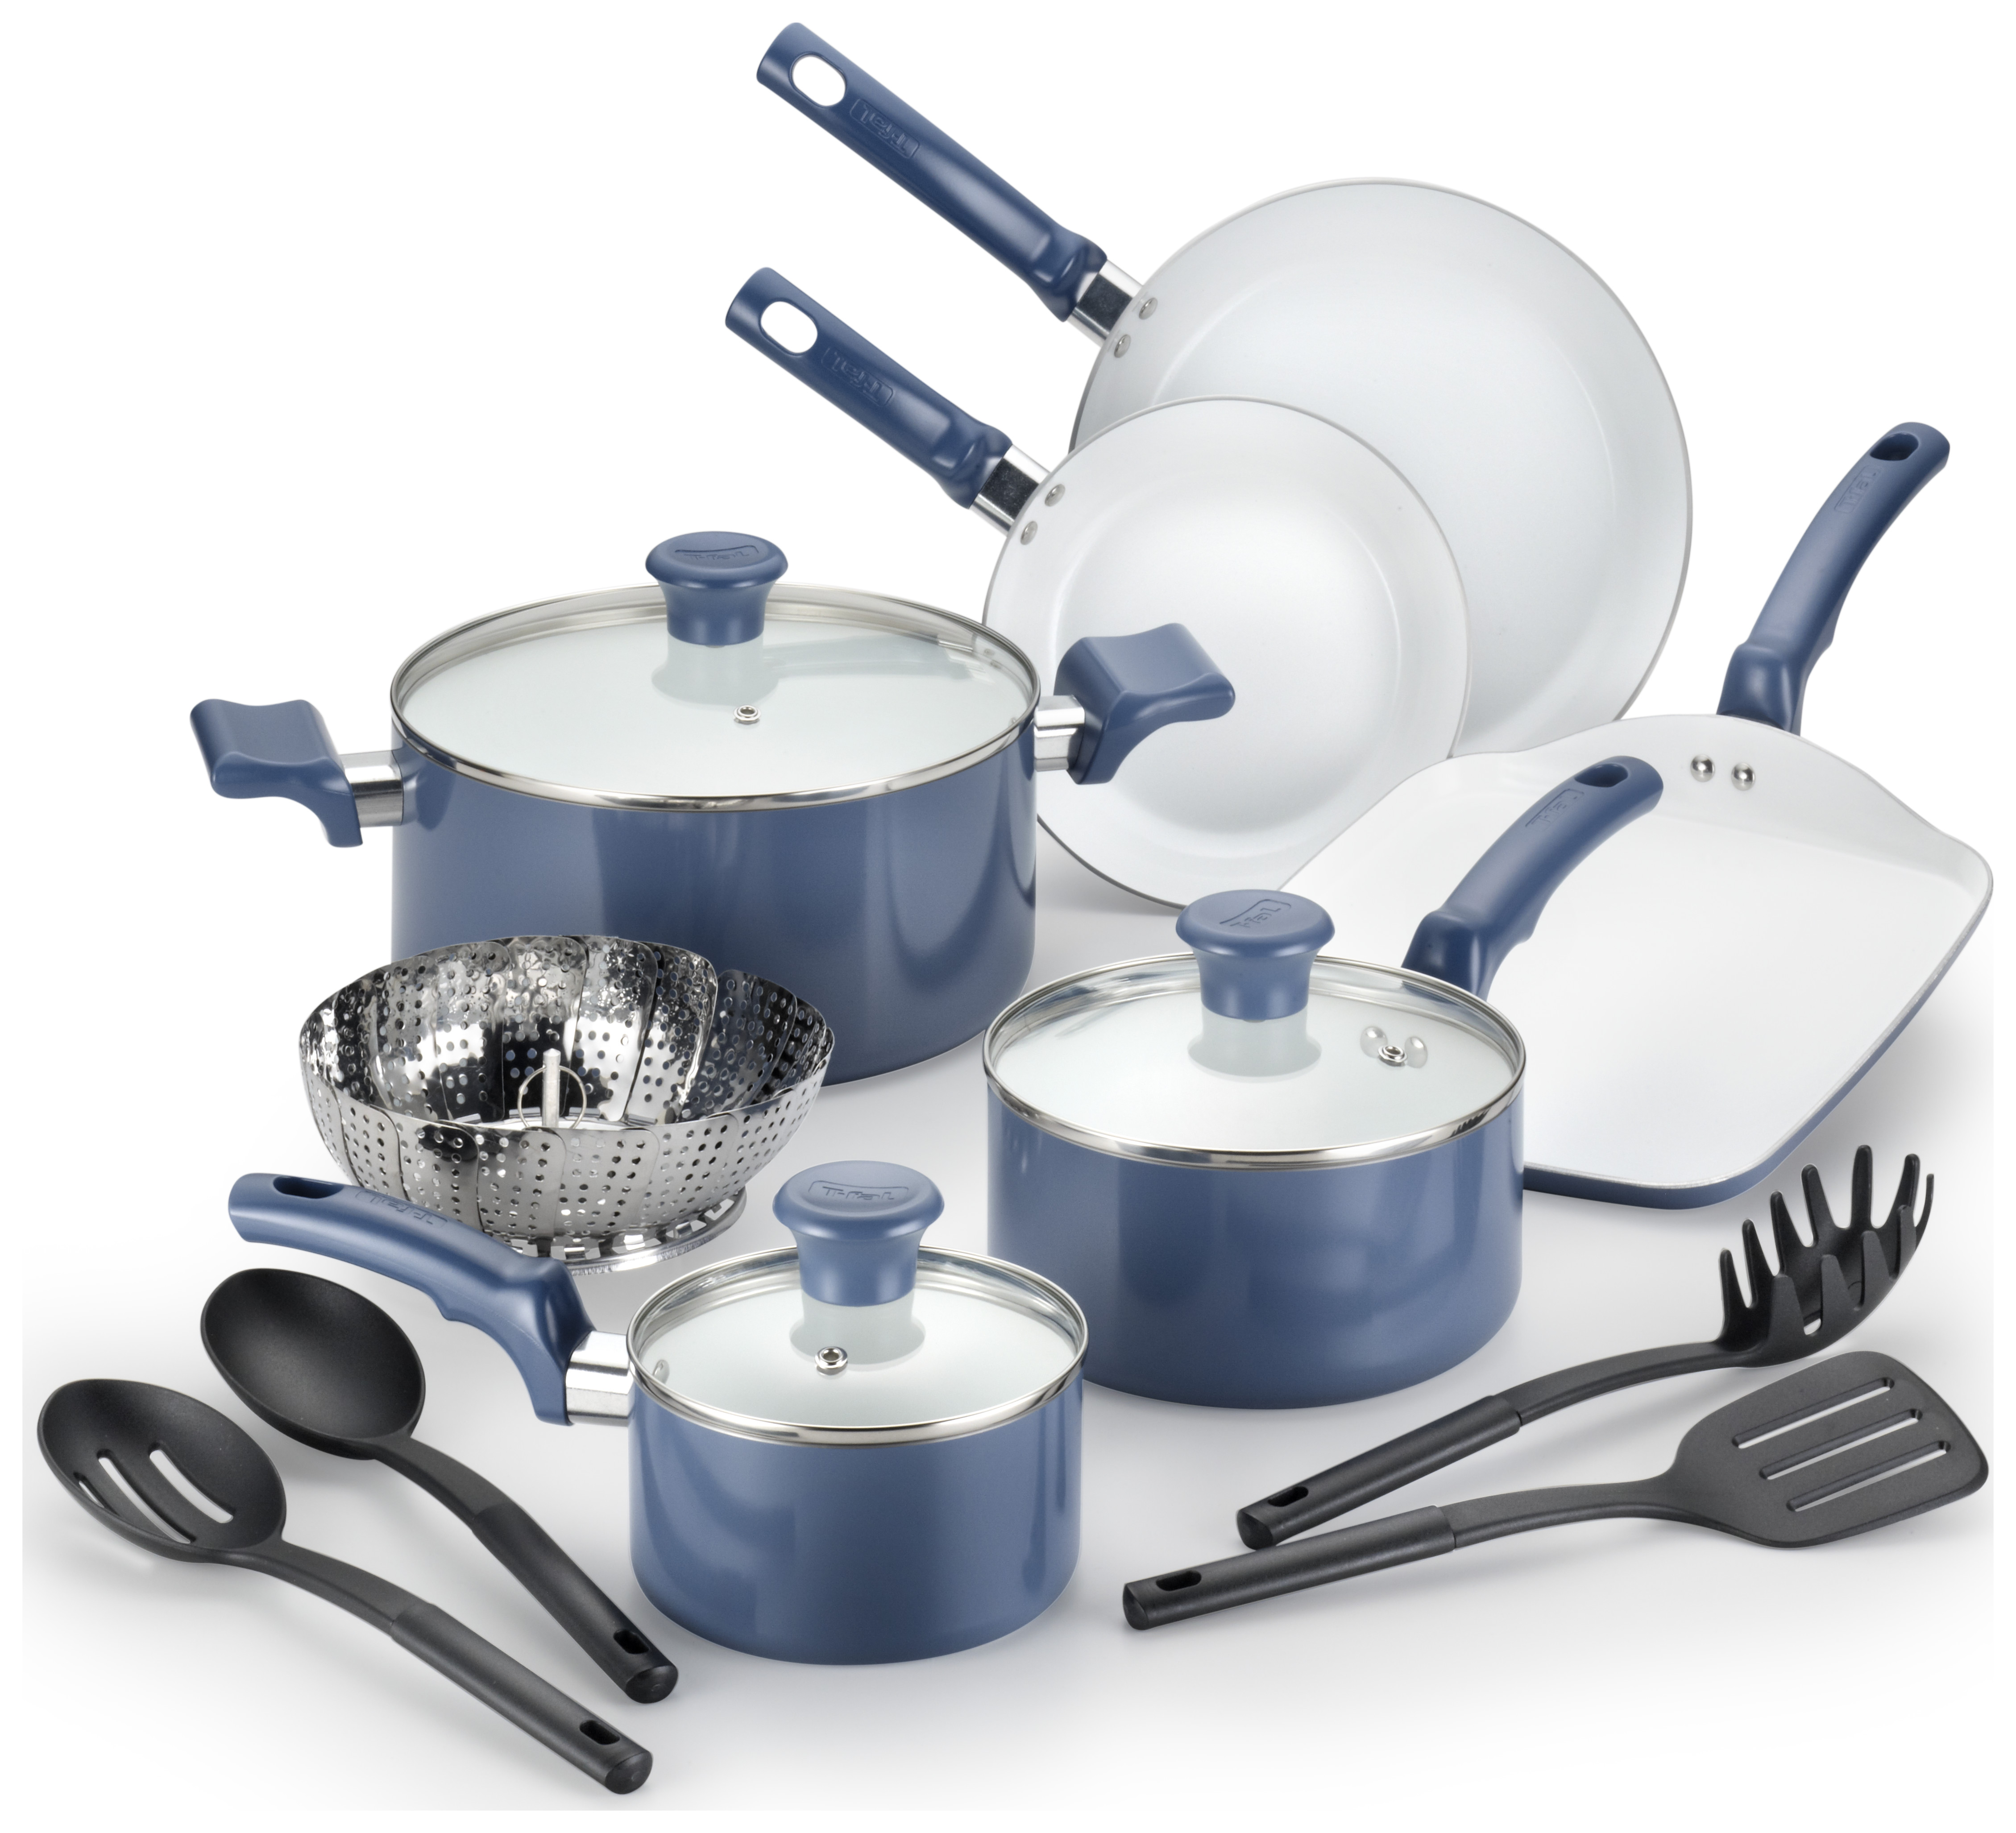 T-fal, Celebrate Ceramic, C521SE, PTFE-free, PFOA-free, Dishwasher Safe Cookware, 14 Pc. Set, Blue